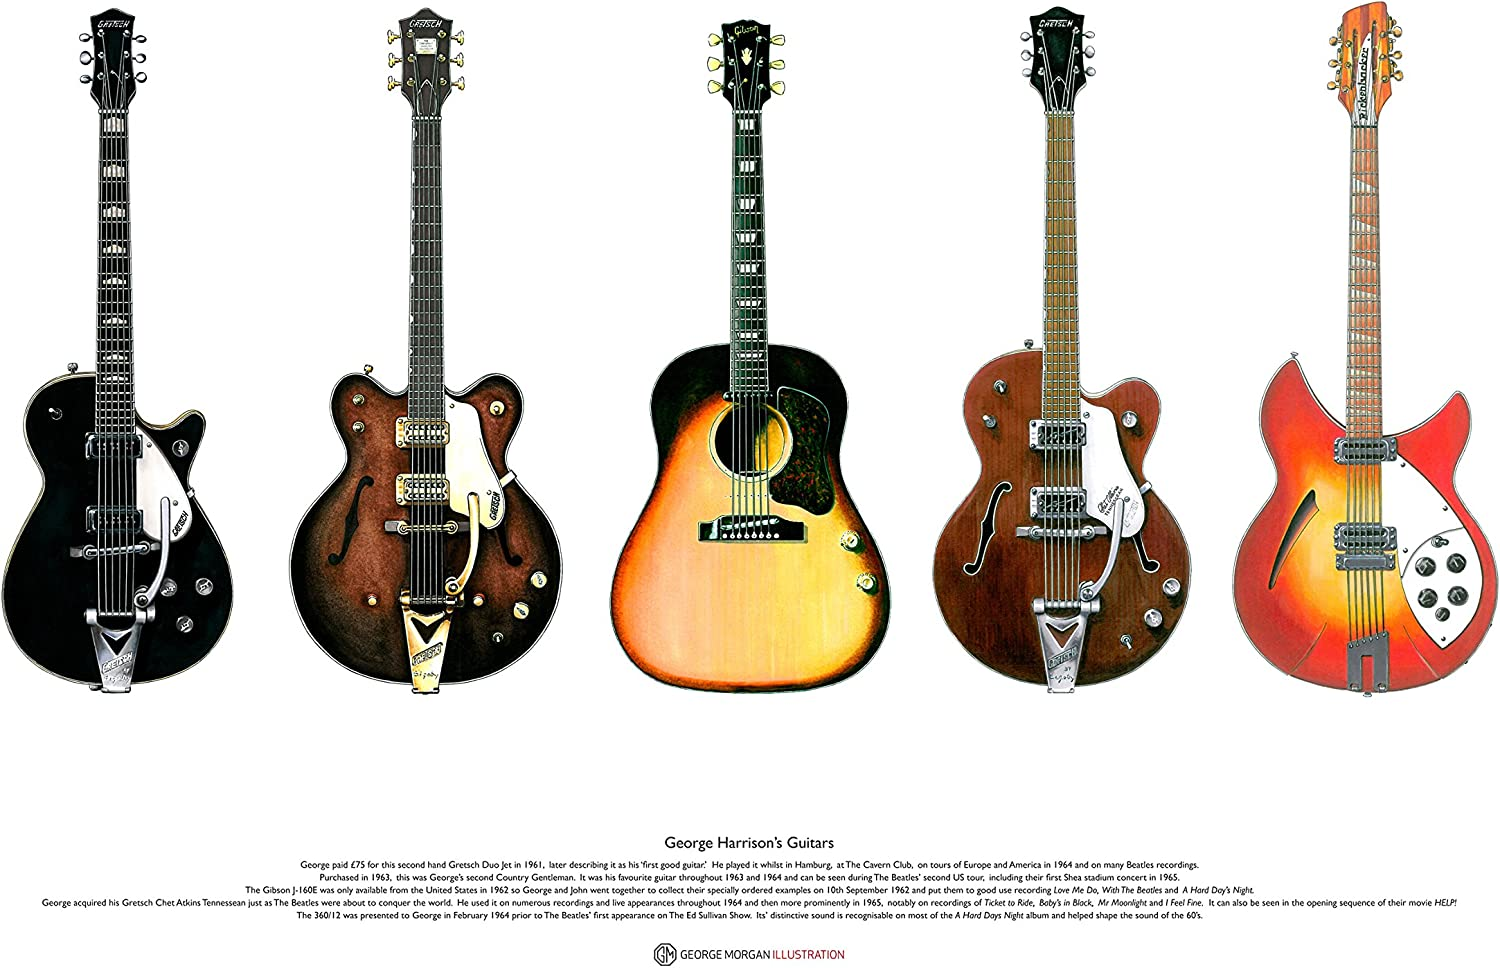 Guitarras de George Harrison - Arte Cartel tamaño A2: Amazon.es: Hogar